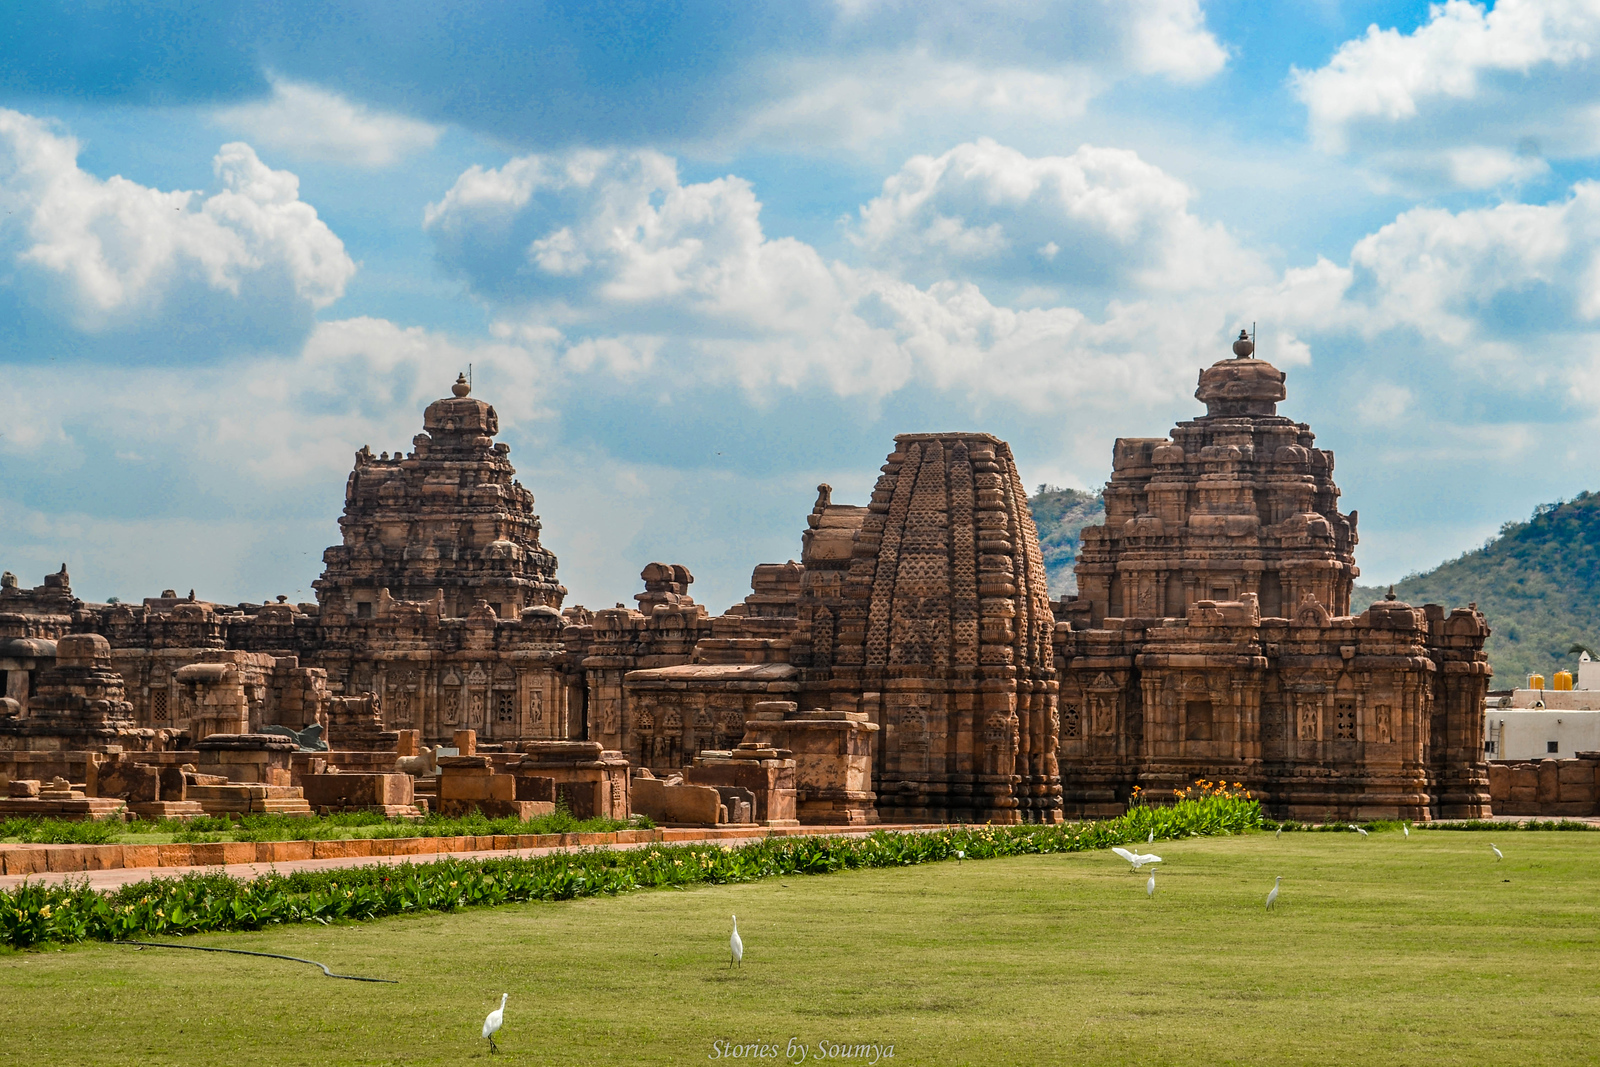 Chalukya Temples of Pattadakal - Truly Hidden Gems of India